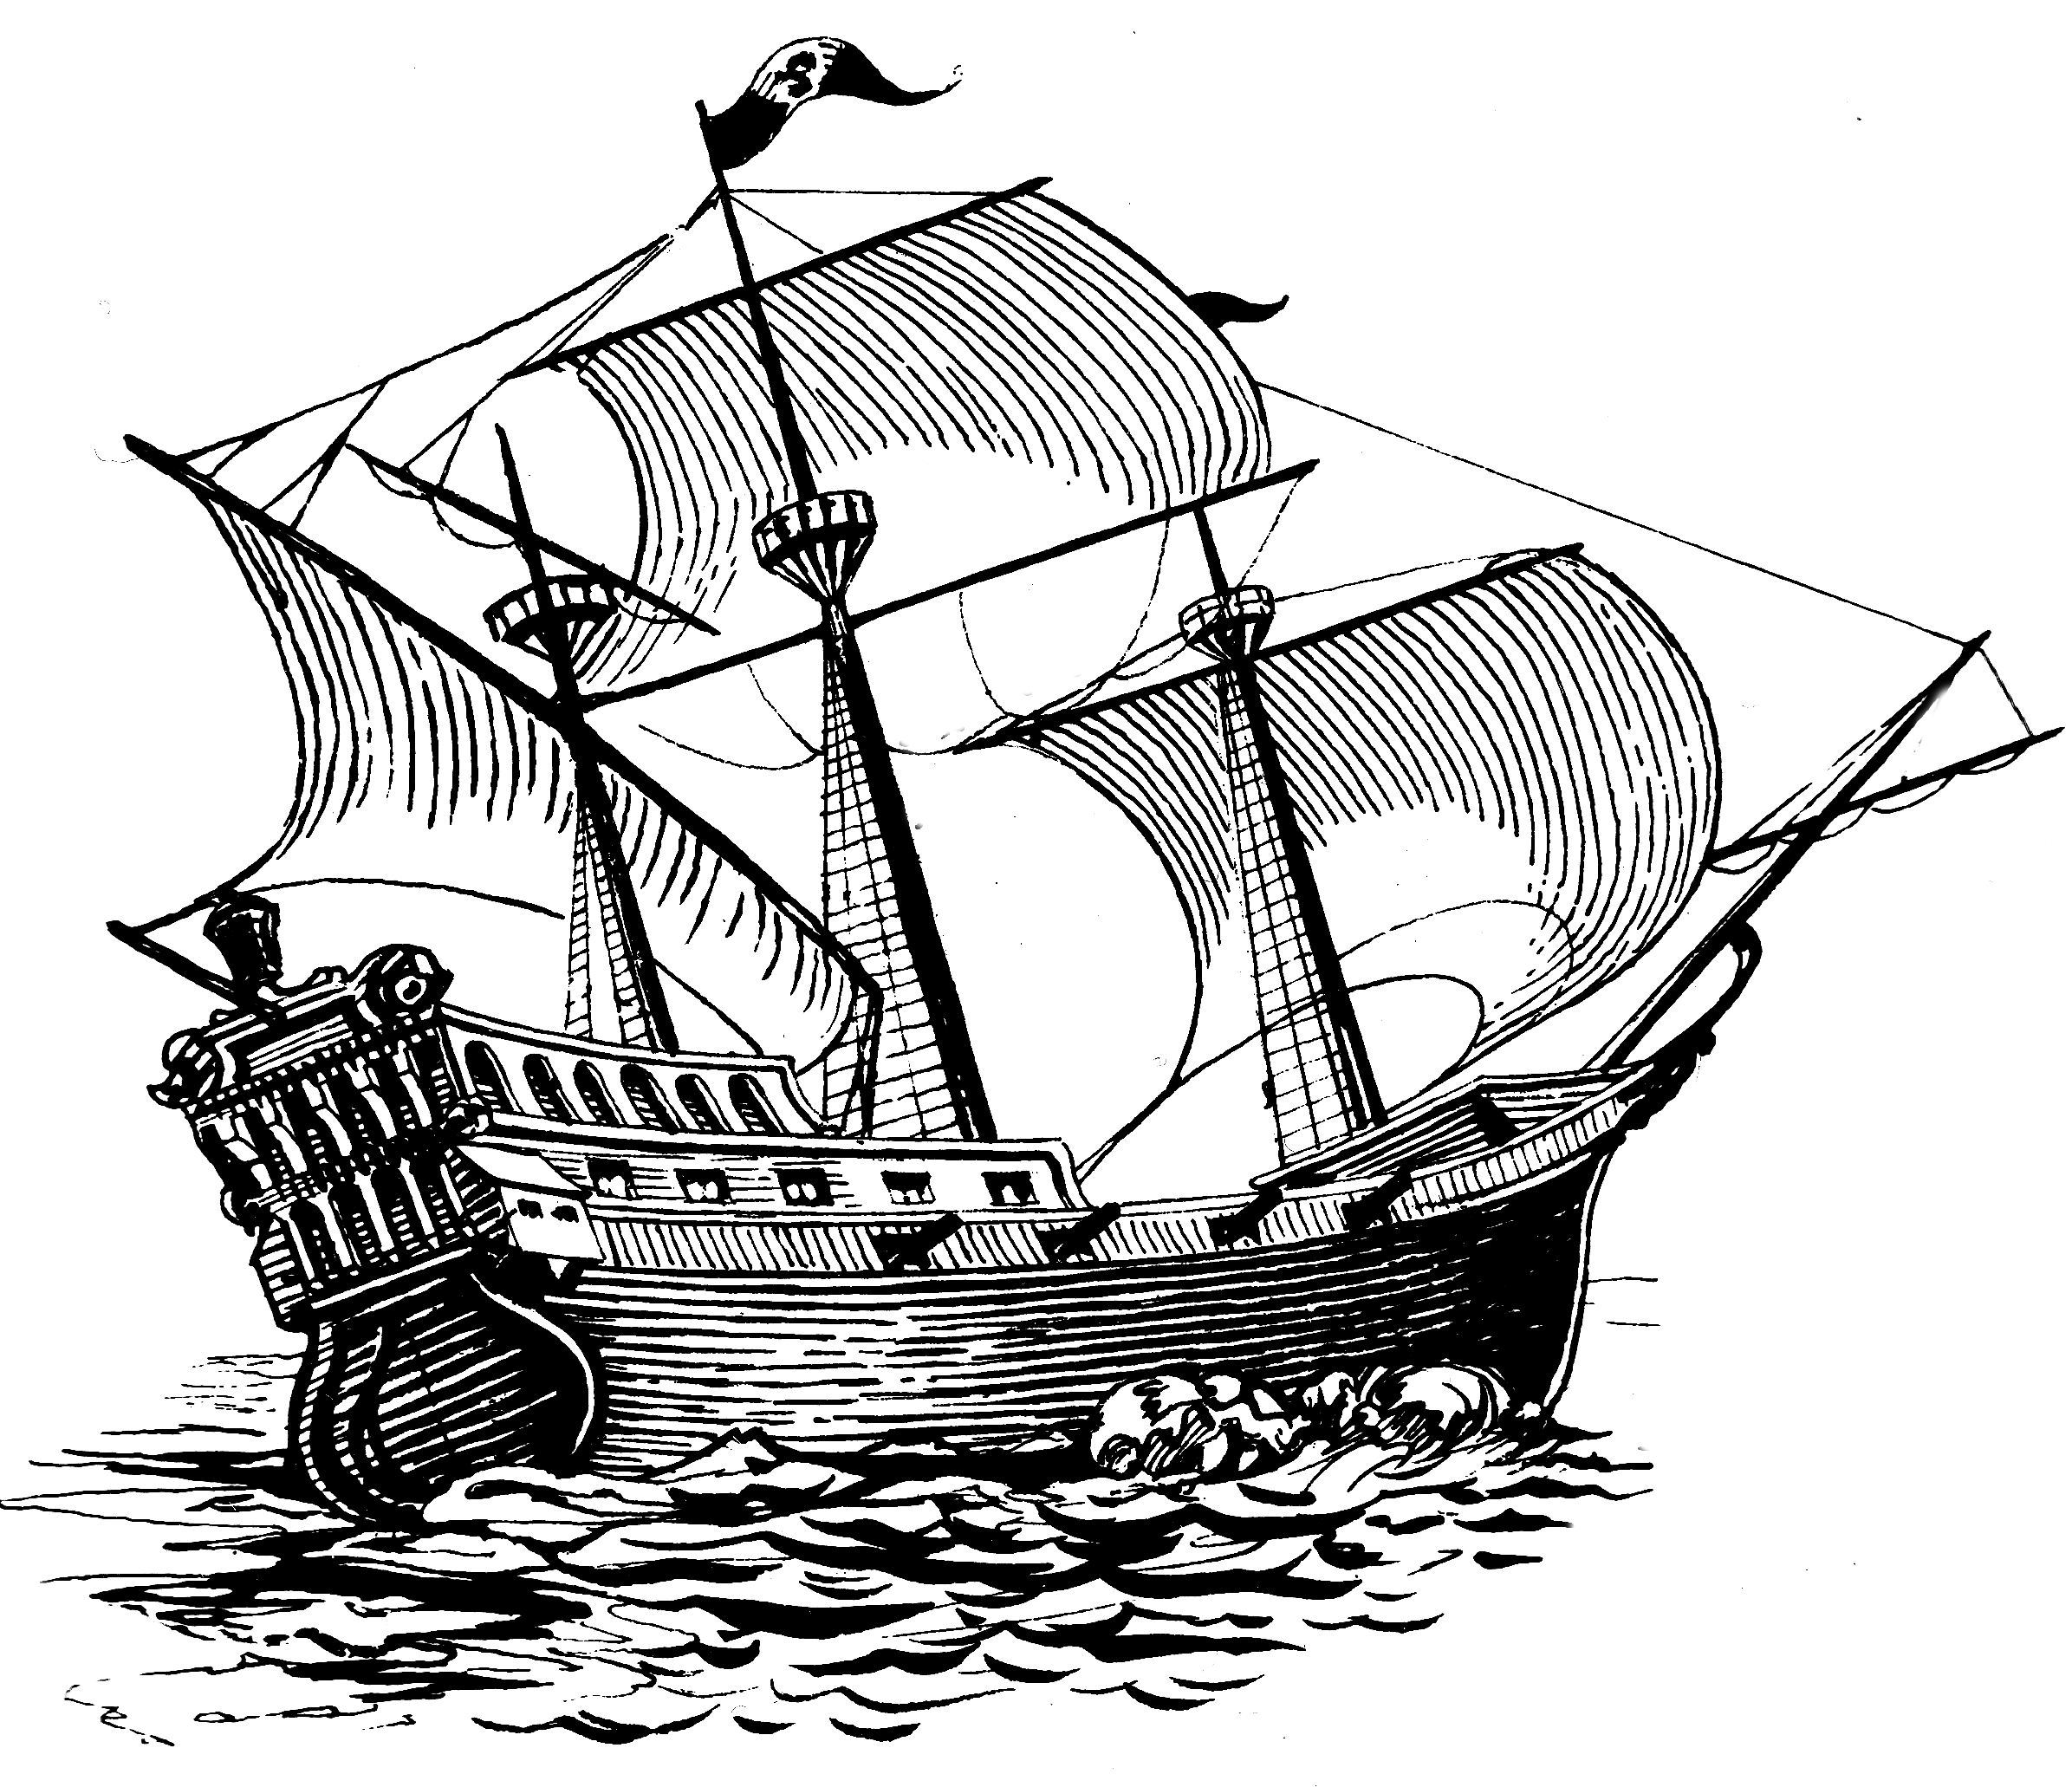 7C 7C  the Blueprints   7Cblueprints Depot 7Ctrucks 7Czil 7Czil 4502 gif in addition  likewise Simple Sailboat Illustration further Parts Of A Ship moreover Naval Warships 1400 1499. on sailboat parts spanish